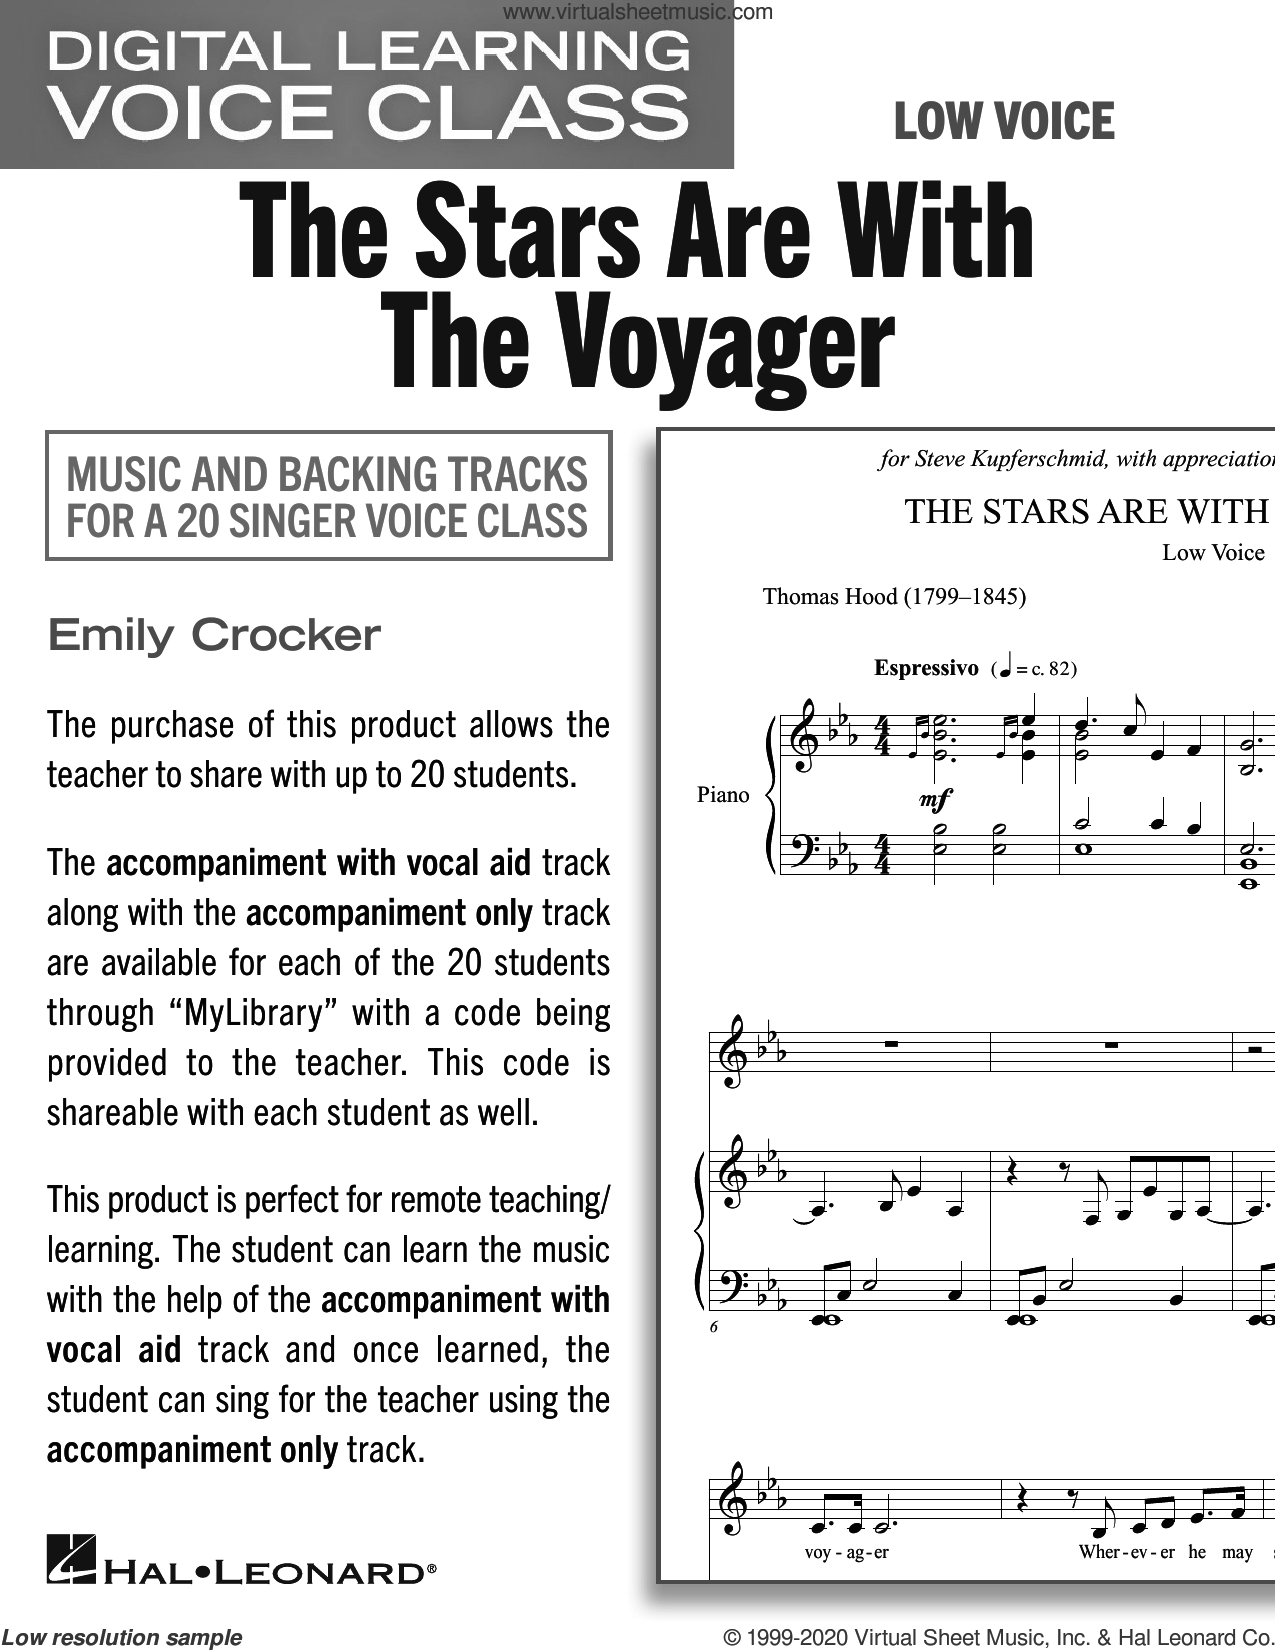 The Stars Are With The Voyager (Medium Low Voice) (includes Audio) sheet music for voice and piano (Medium Low Voice) by Emily Crocker and Thomas Hood (1799-1845), intermediate skill level